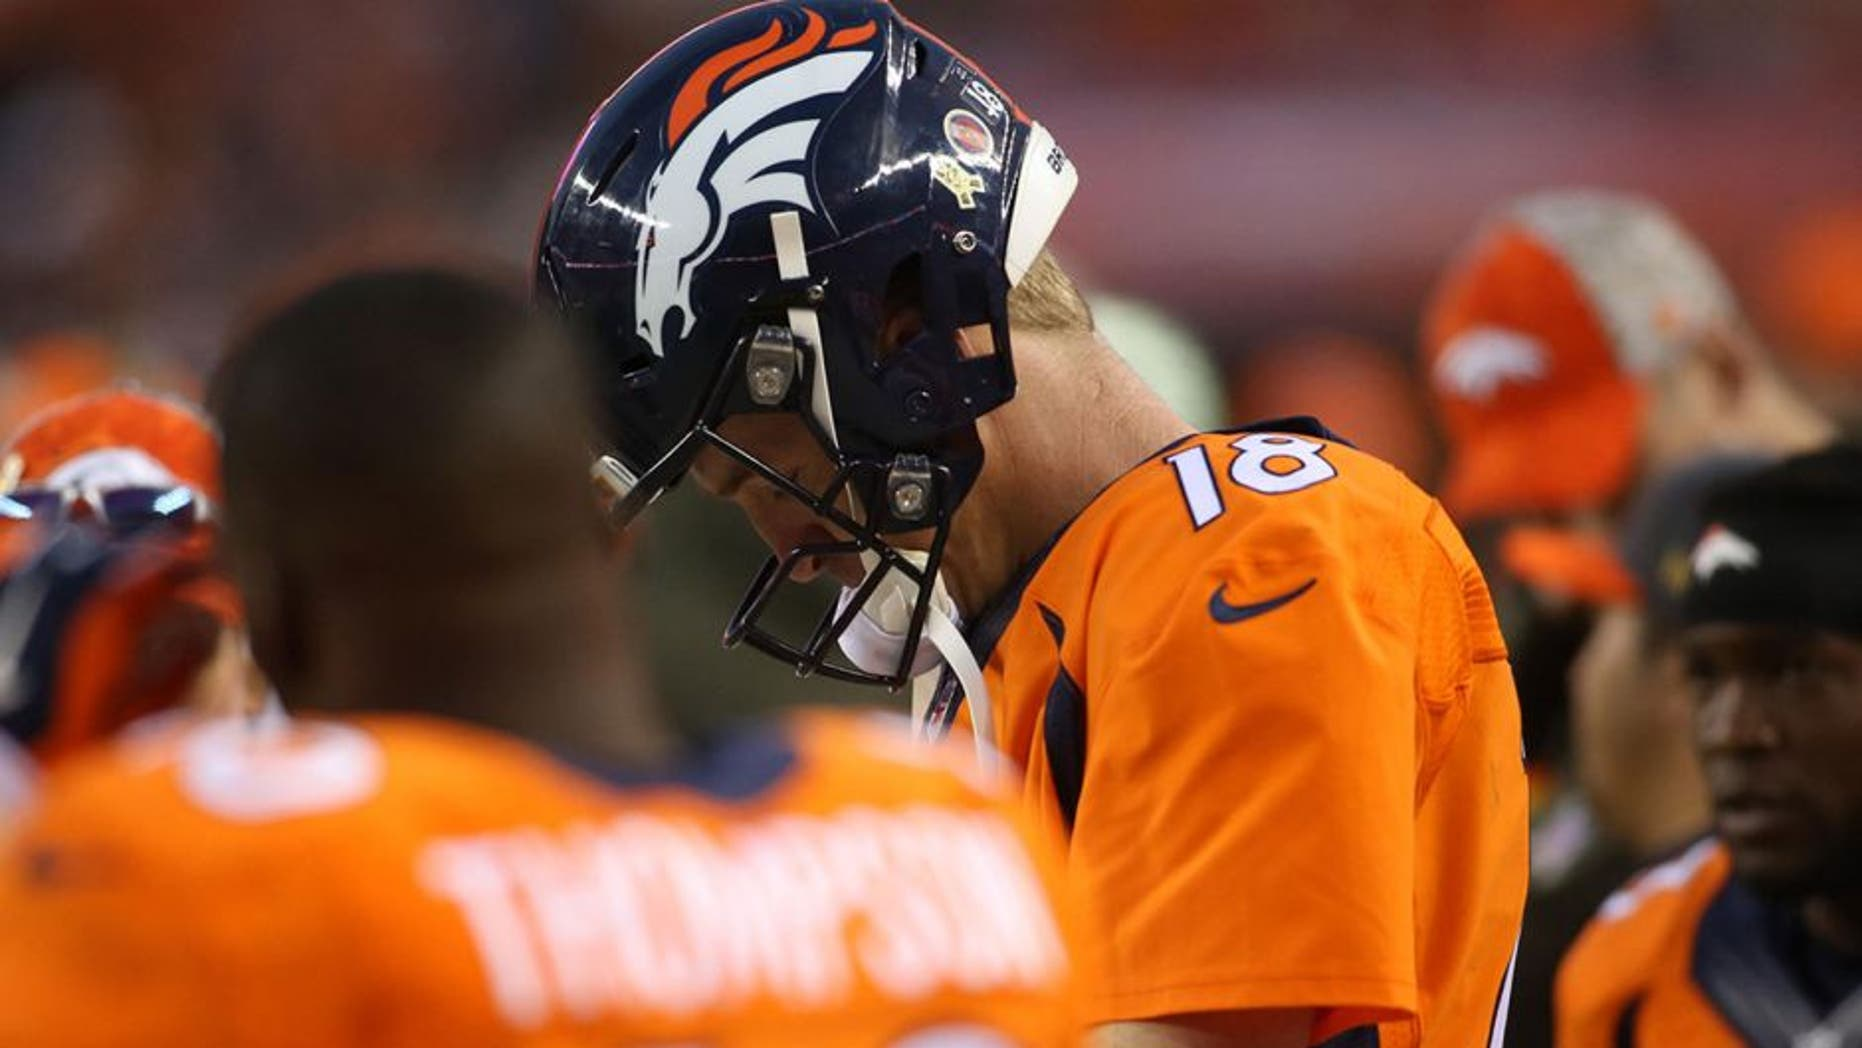 Nov 15, 2015; Denver, CO, USA; Denver Broncos quarterback Peyton Manning (18) reacts on the sidelines during the second half against the Kansas City Chiefs at Sports Authority Field at Mile High. The Chiefs won 29-13. Mandatory Credit: Chris Humphreys-USA TODAY Sports